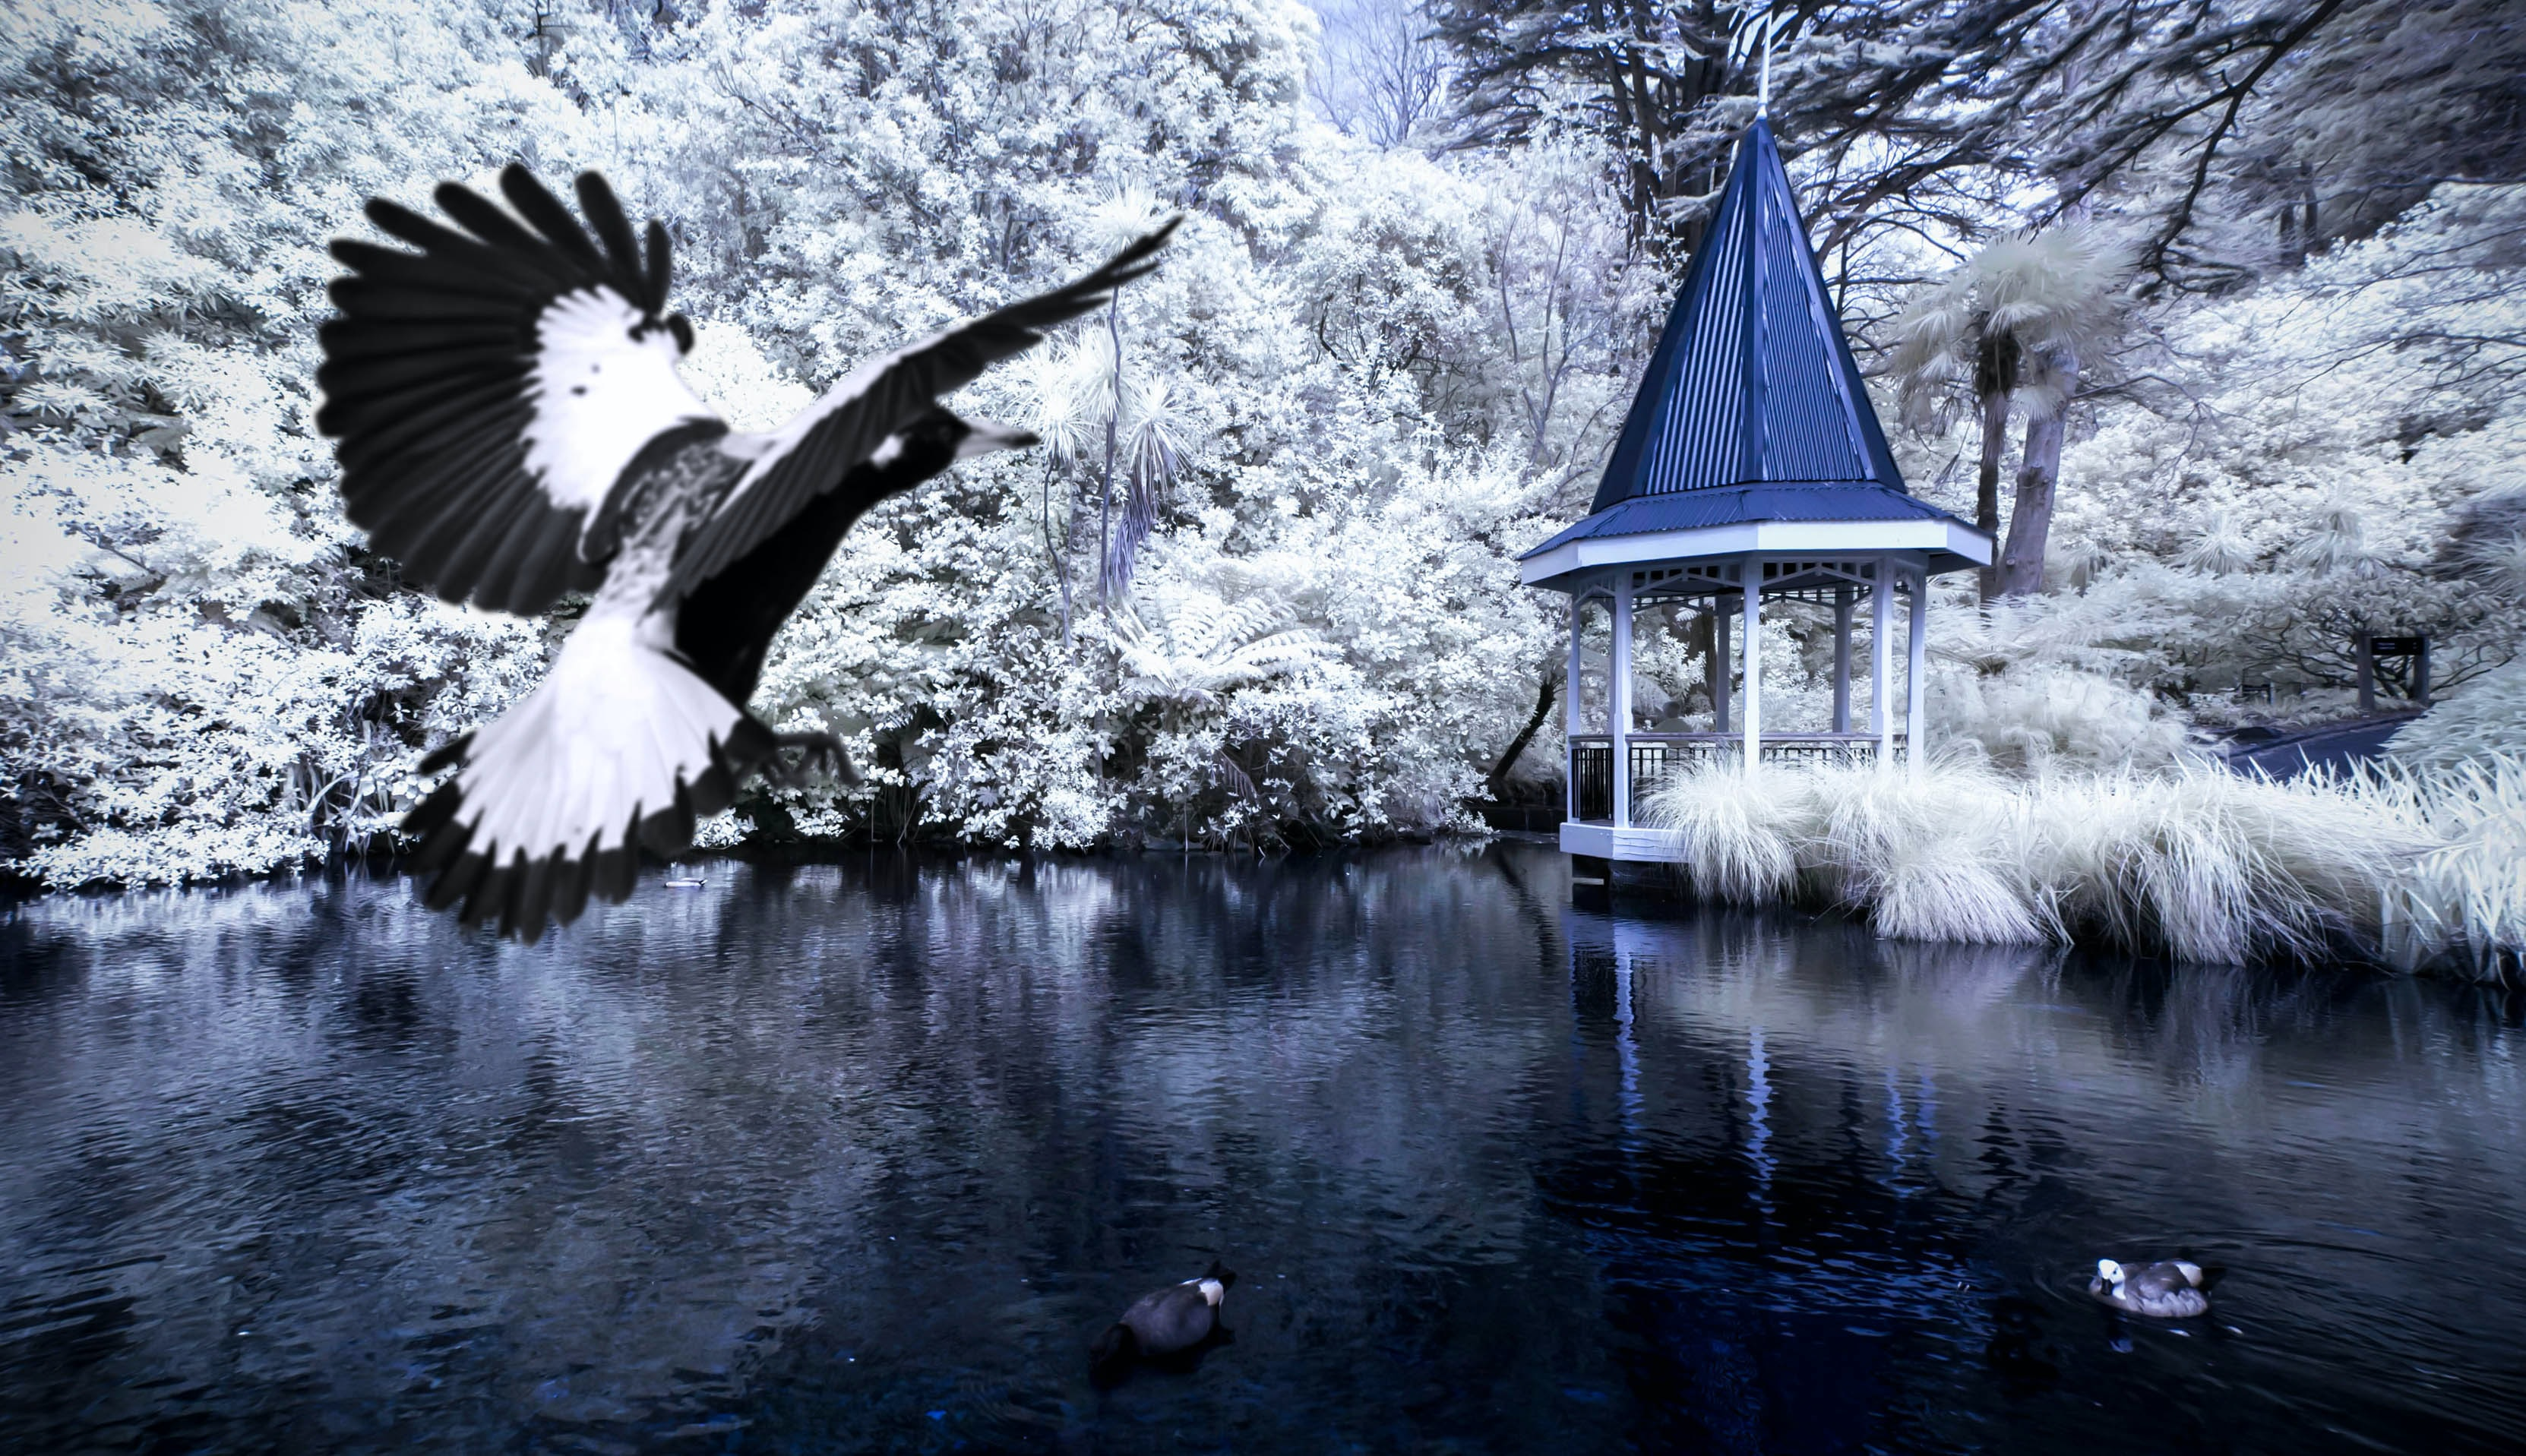 An albatross bird preparing to land on a lake which is surrounded by snow-covered trees; a white gazebo with a blue roof sits on the shore of the lake